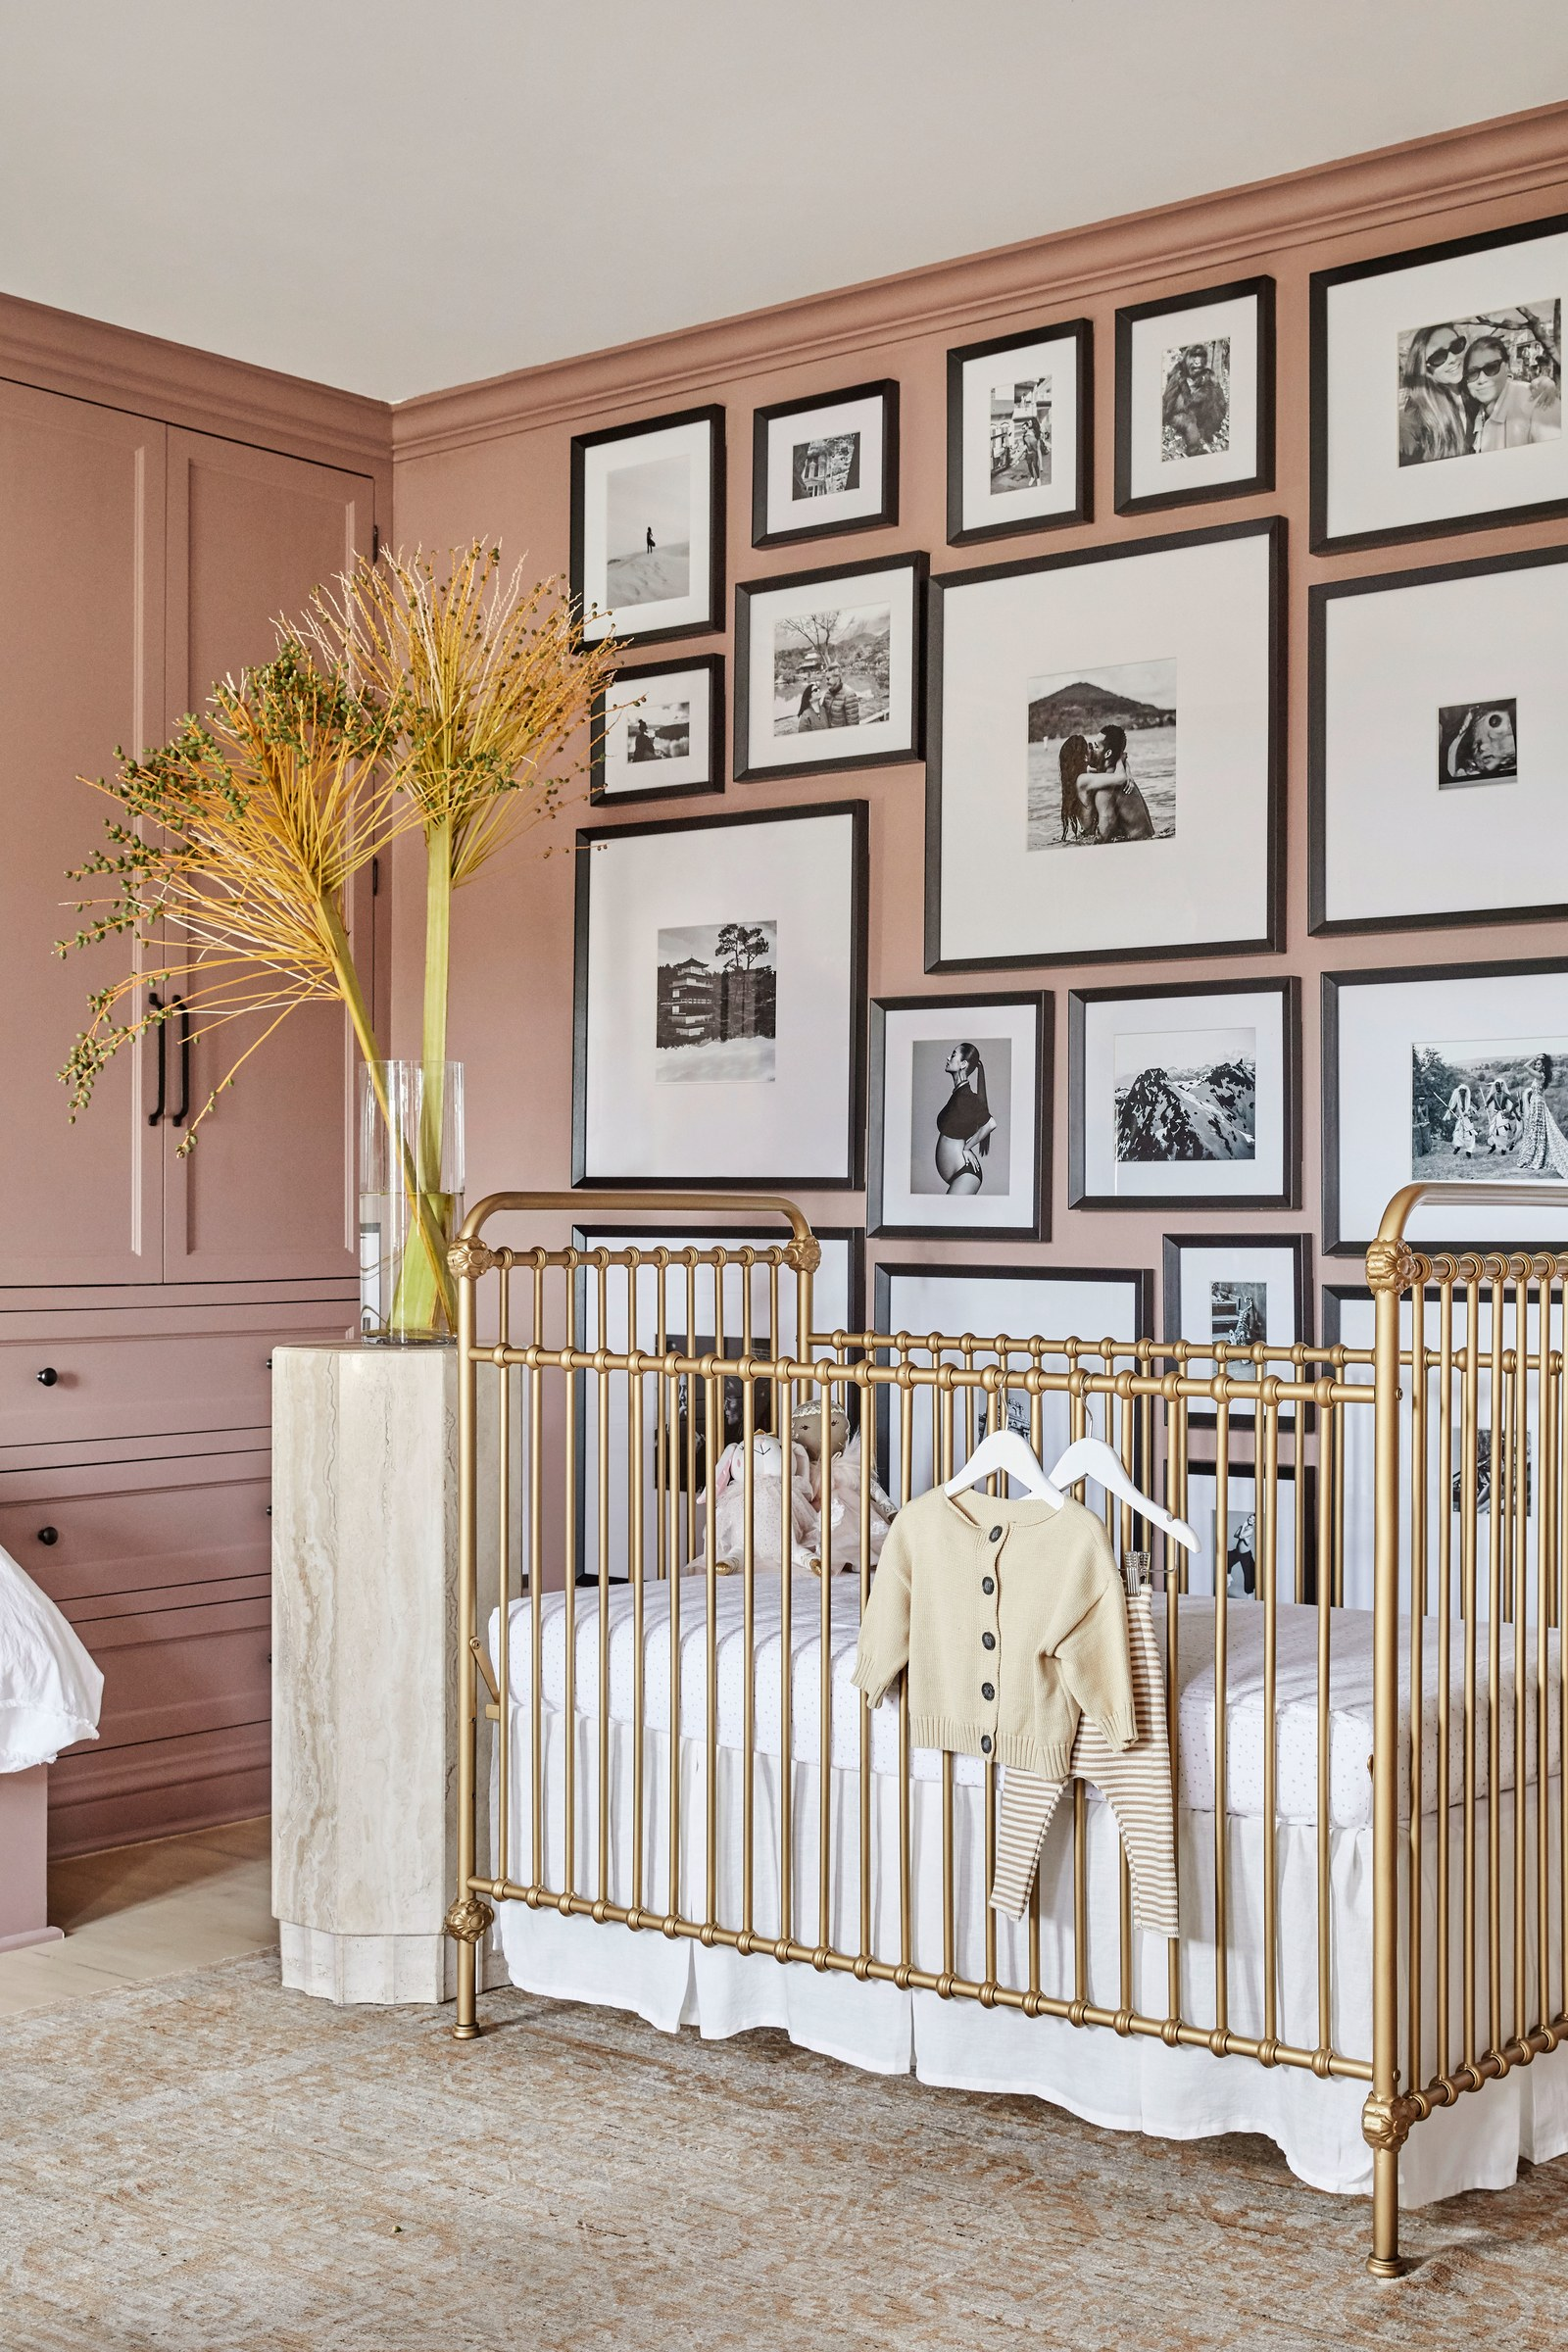 los angeles homes Los Angeles Homes: Meet Shay Mitchell's Redecorated Oasis 11